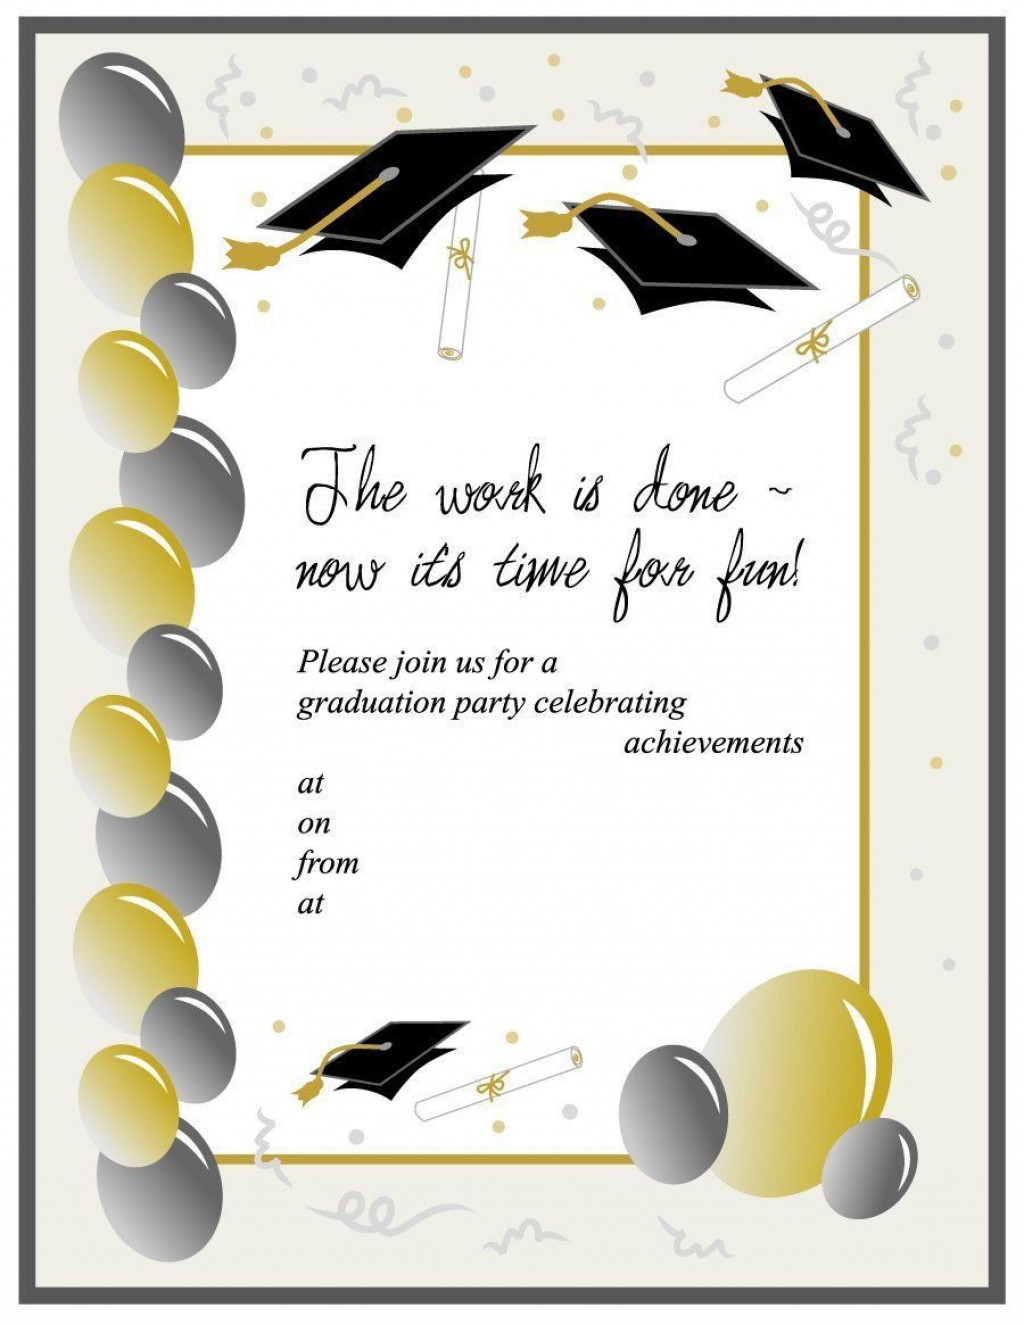 006 Staggering Microsoft Word Graduation Invitation Template Example  PartyLarge